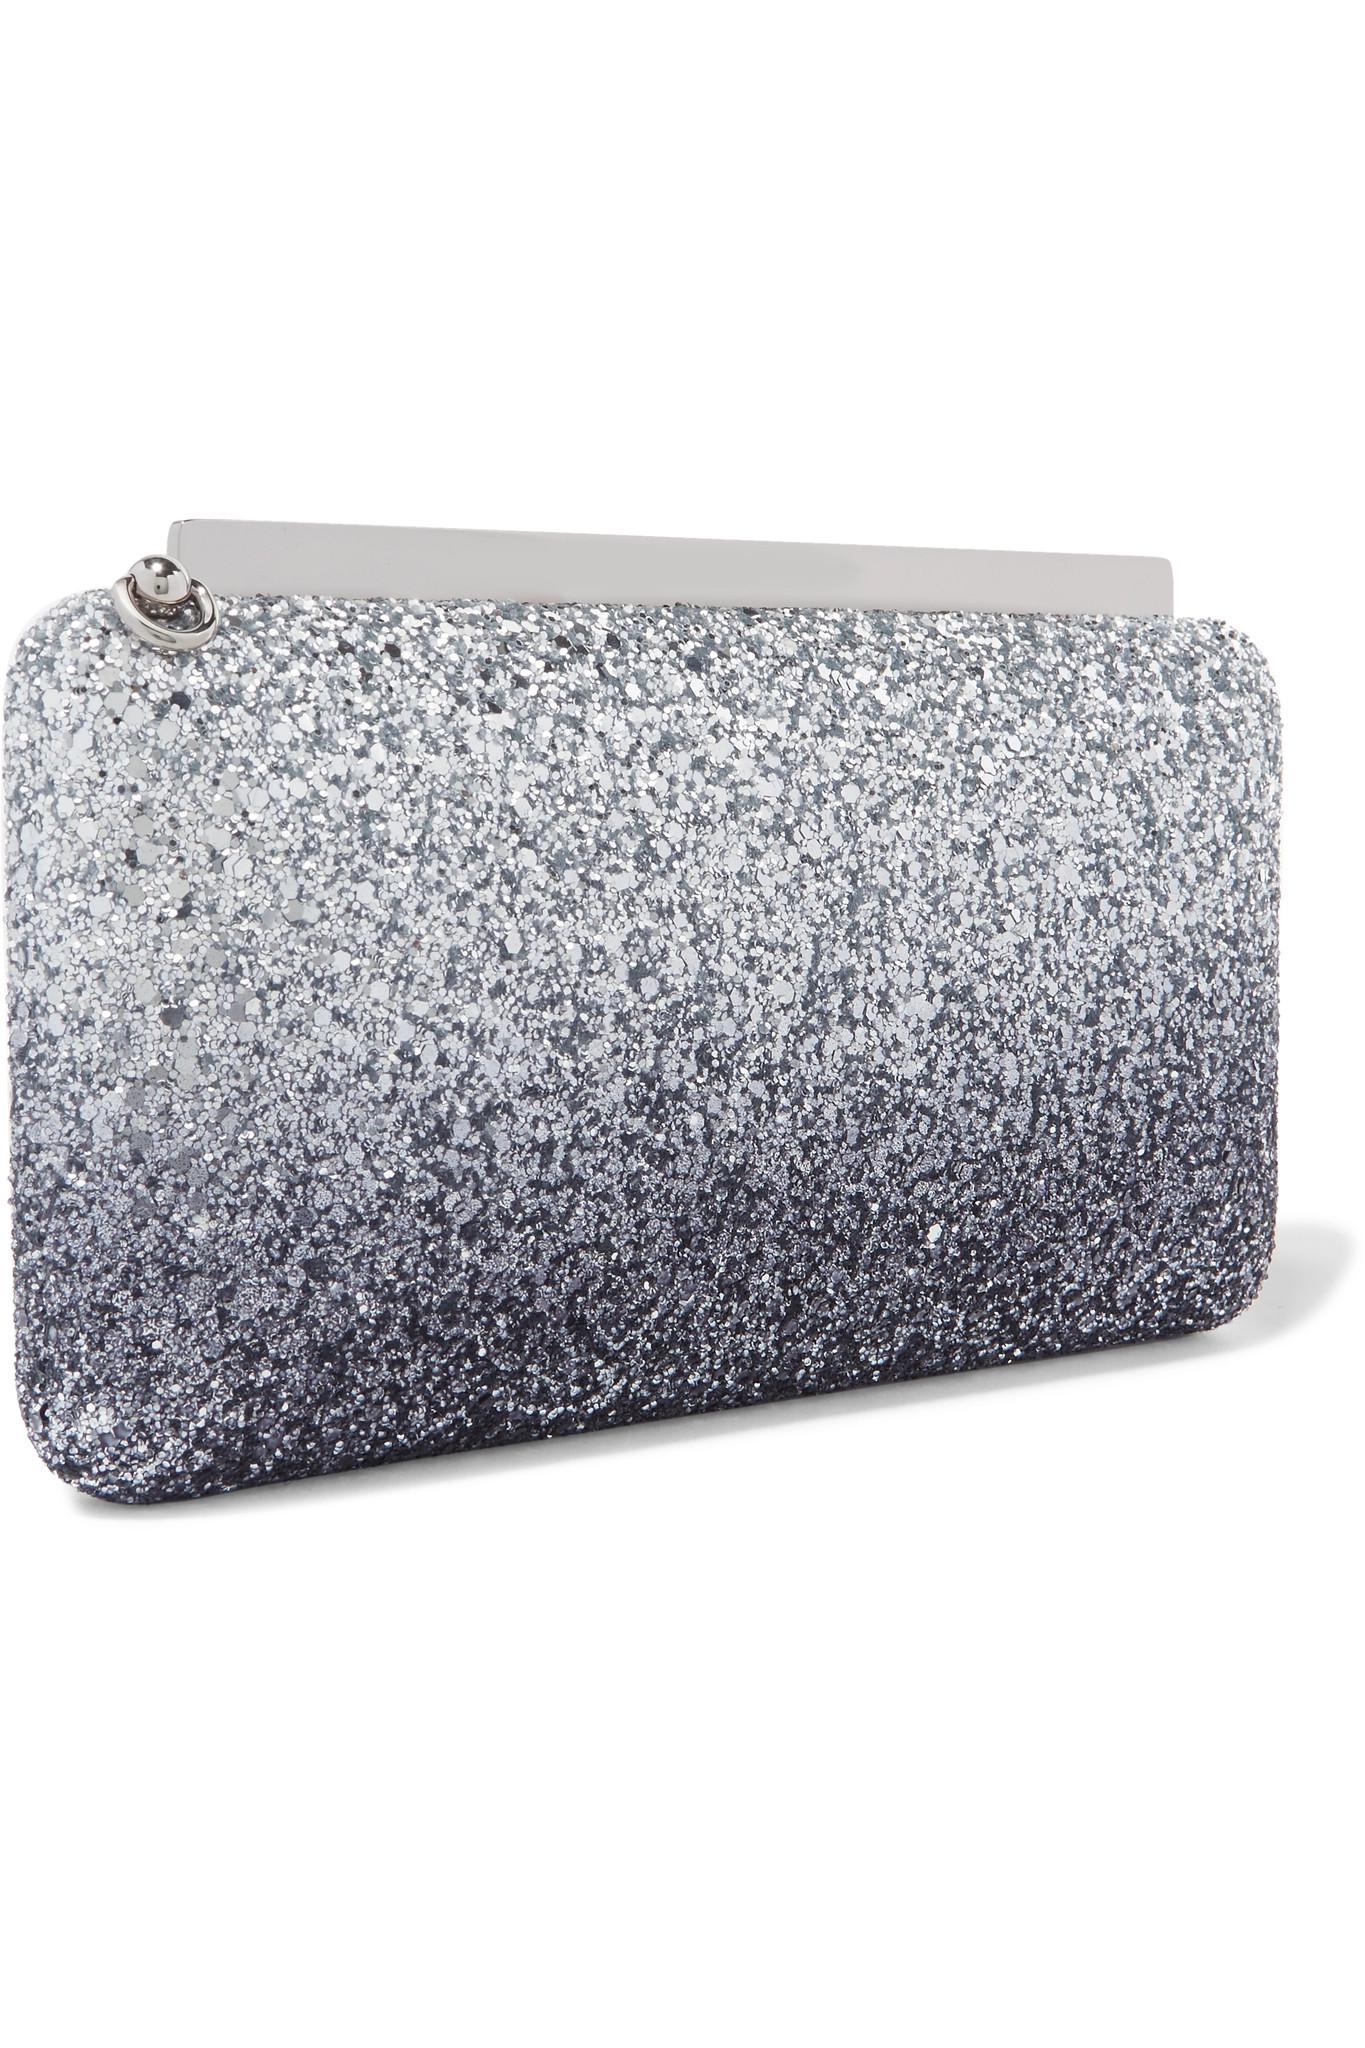 1834b141166 jimmy-choo-sky-blue-Ellipse-Degrade-Glittered-Leather-Clutch.jpeg